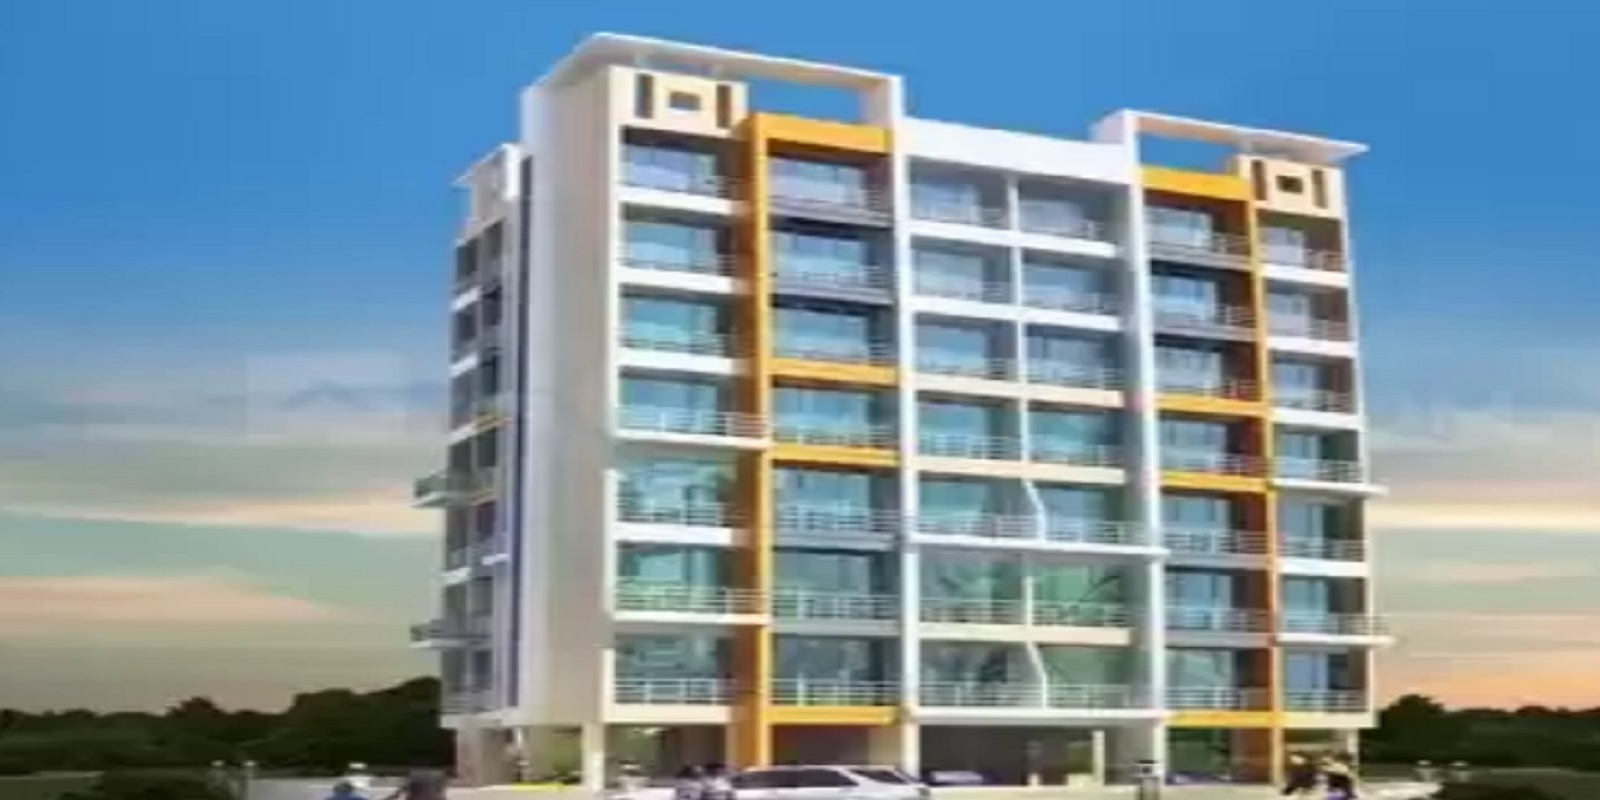 bhramraj residency project project large image1